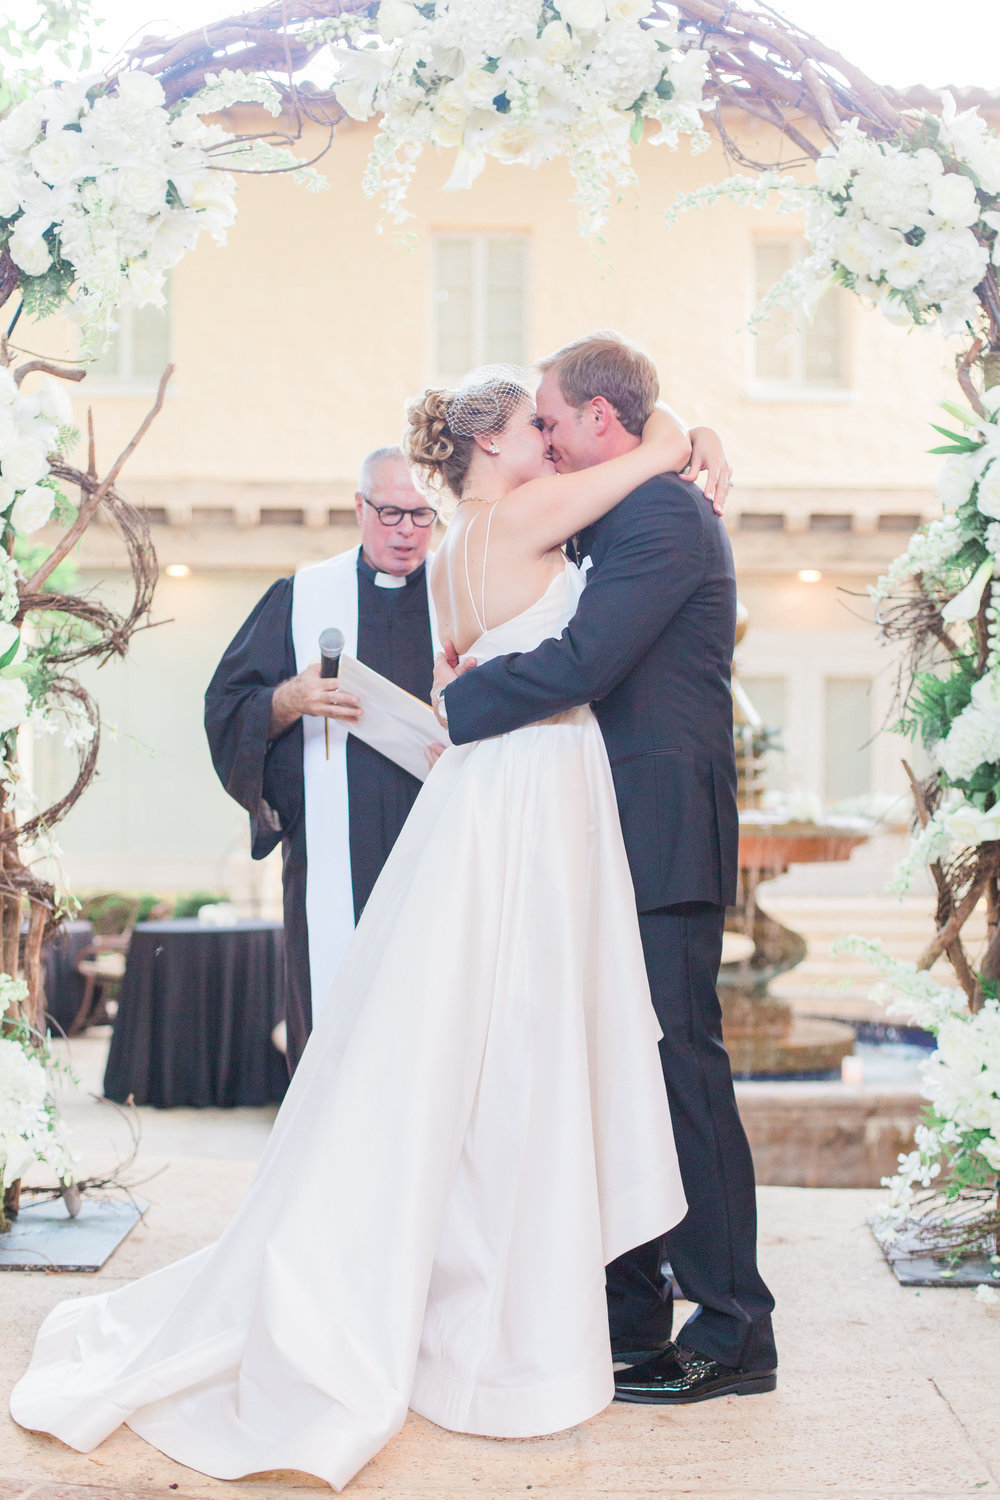 Anne Barge Ryland gown from Little White Dress in Denver | Boca Raton, Florida wedding at The Addison | Thompson Photography Group